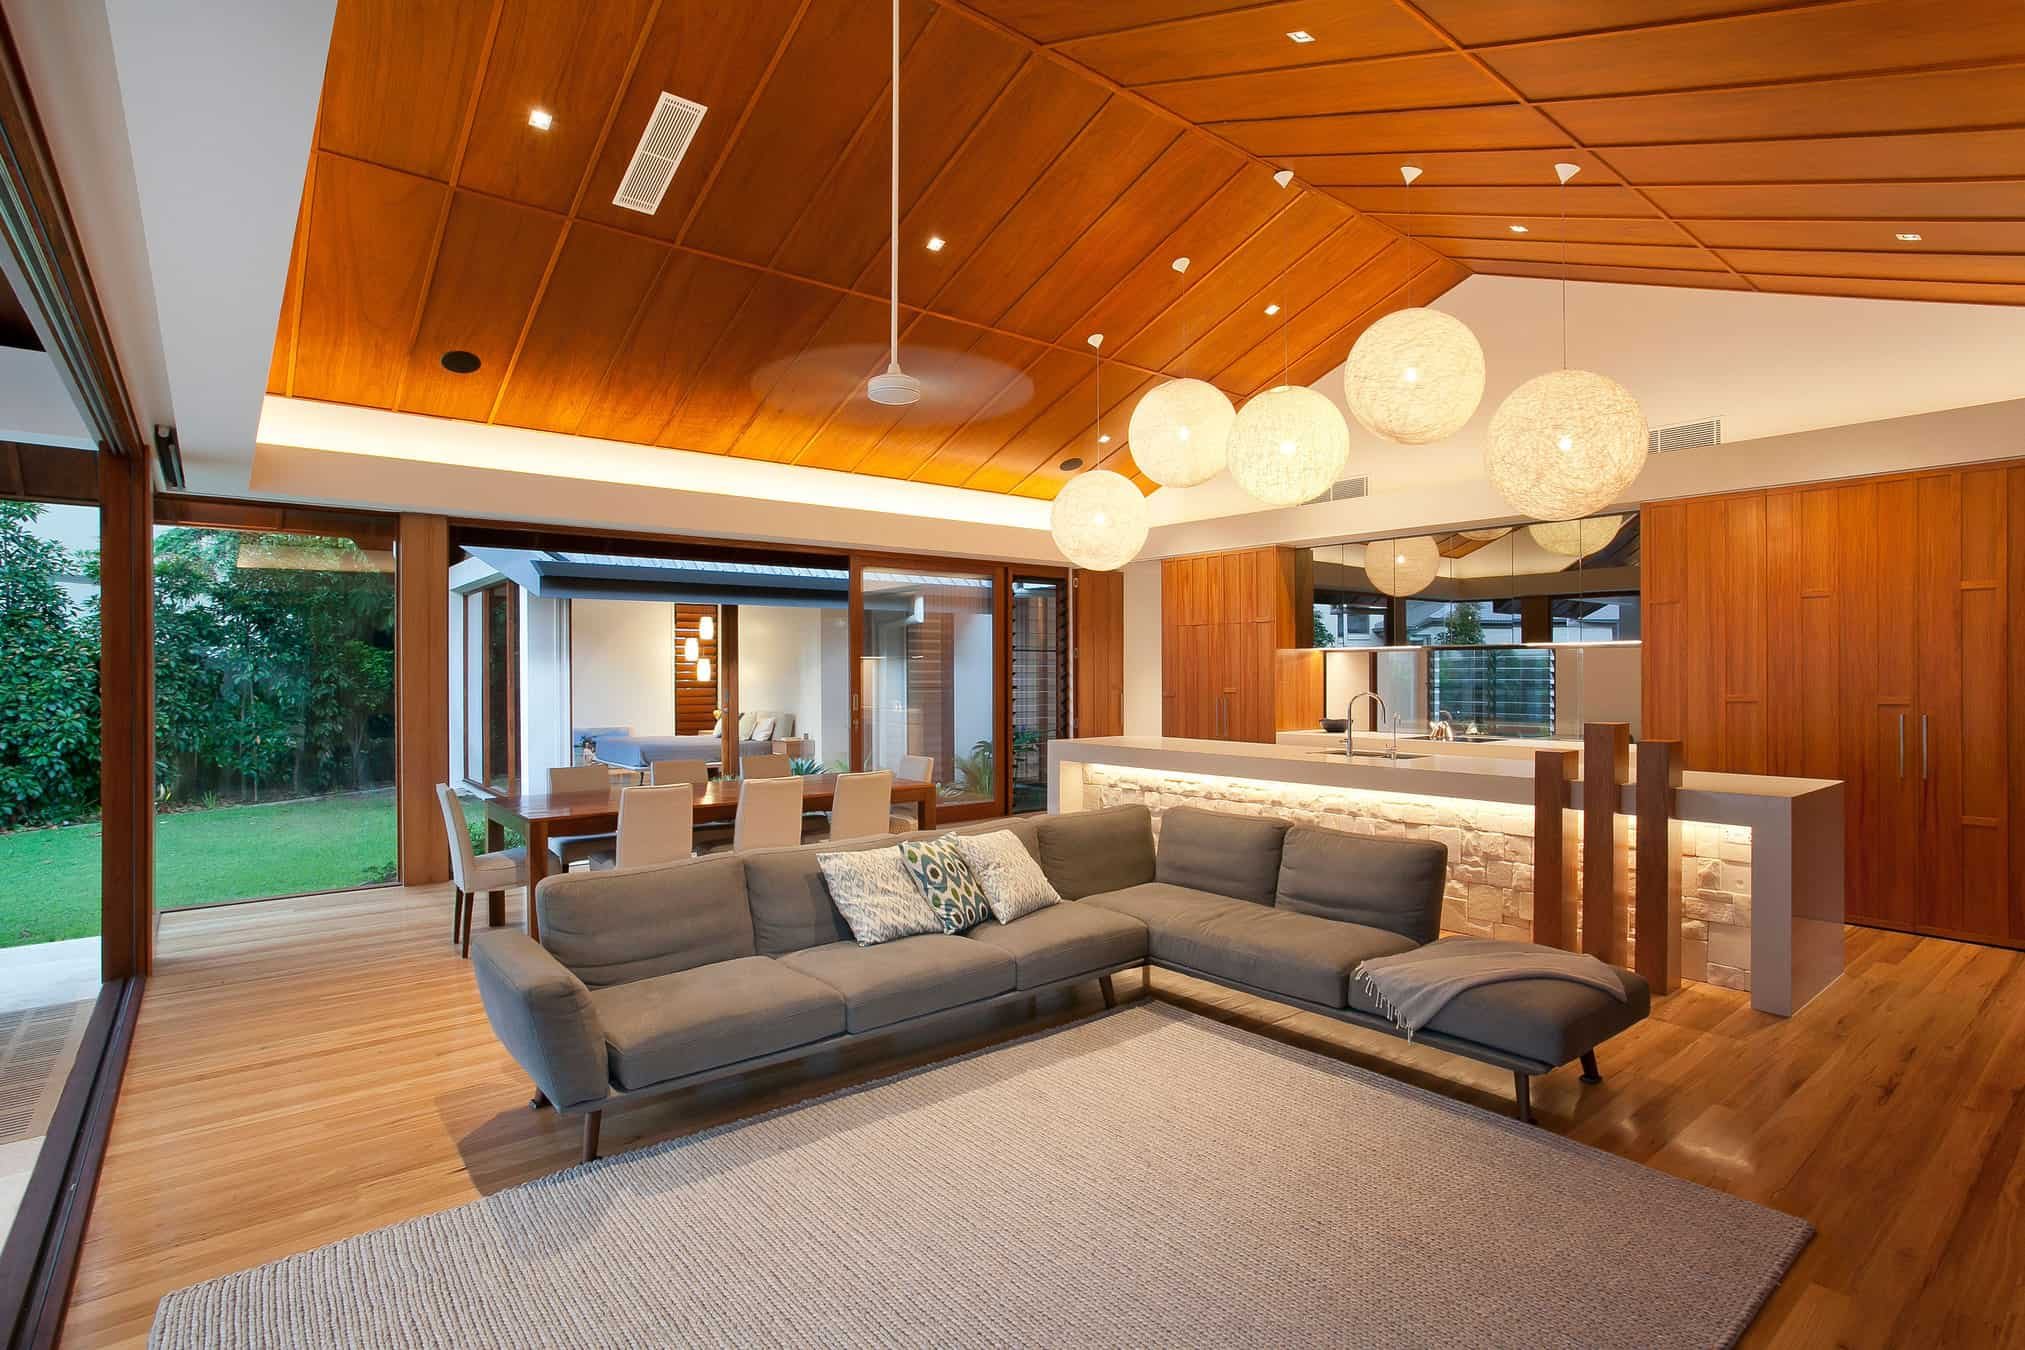 Queensland Building Design Awards 2016 Winner Residential New Houses 750 001 1 000 Construction Cost